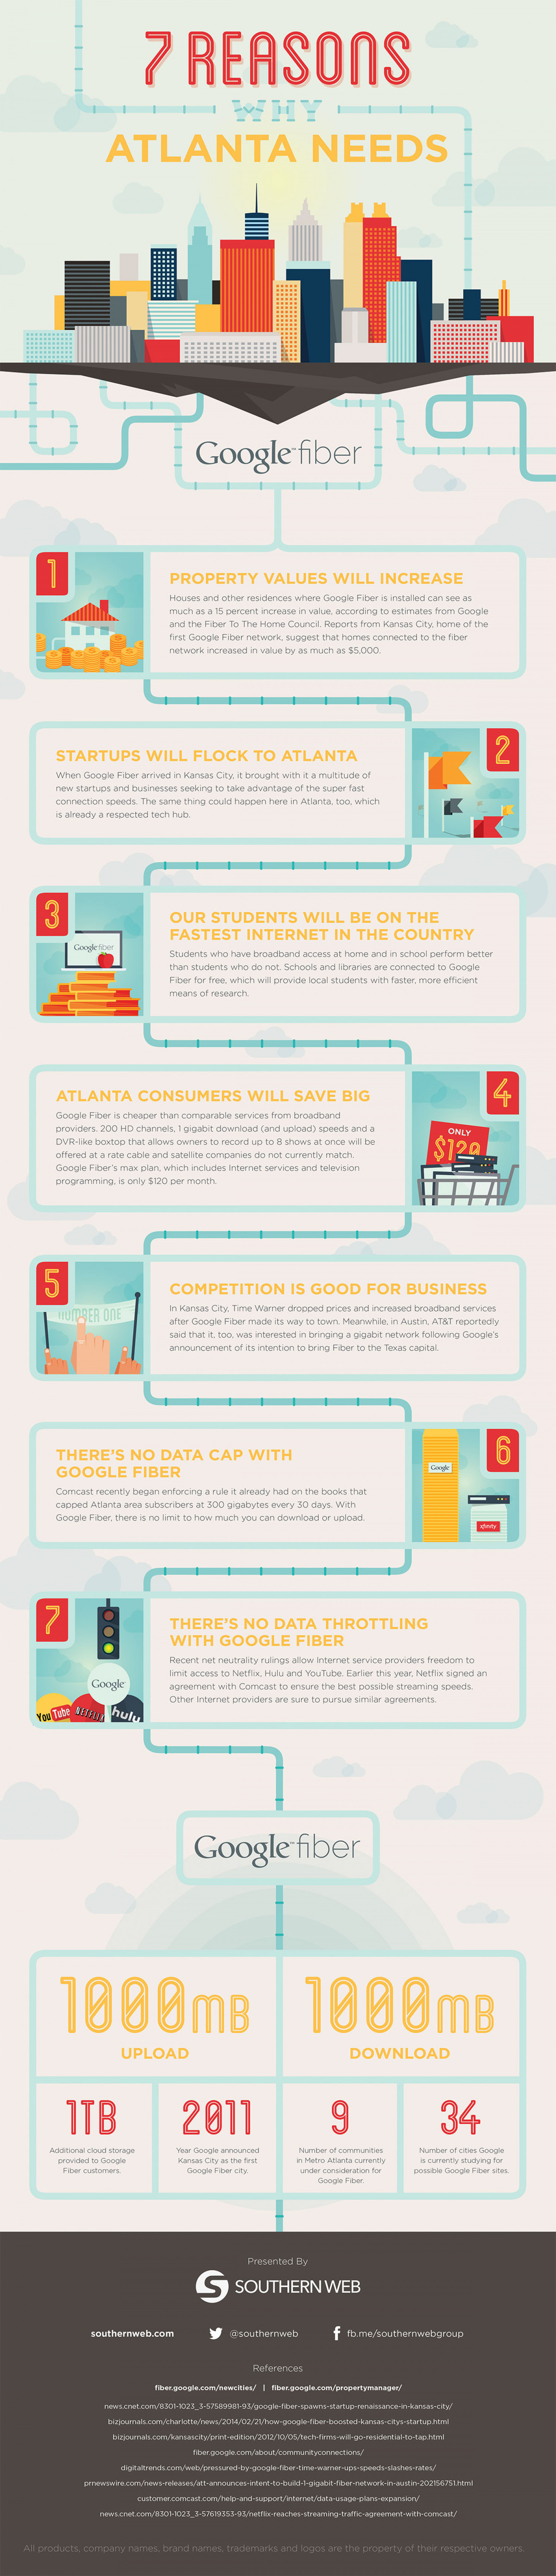 7 Reasons Why Atlanta Needs Google Fiber Infographic